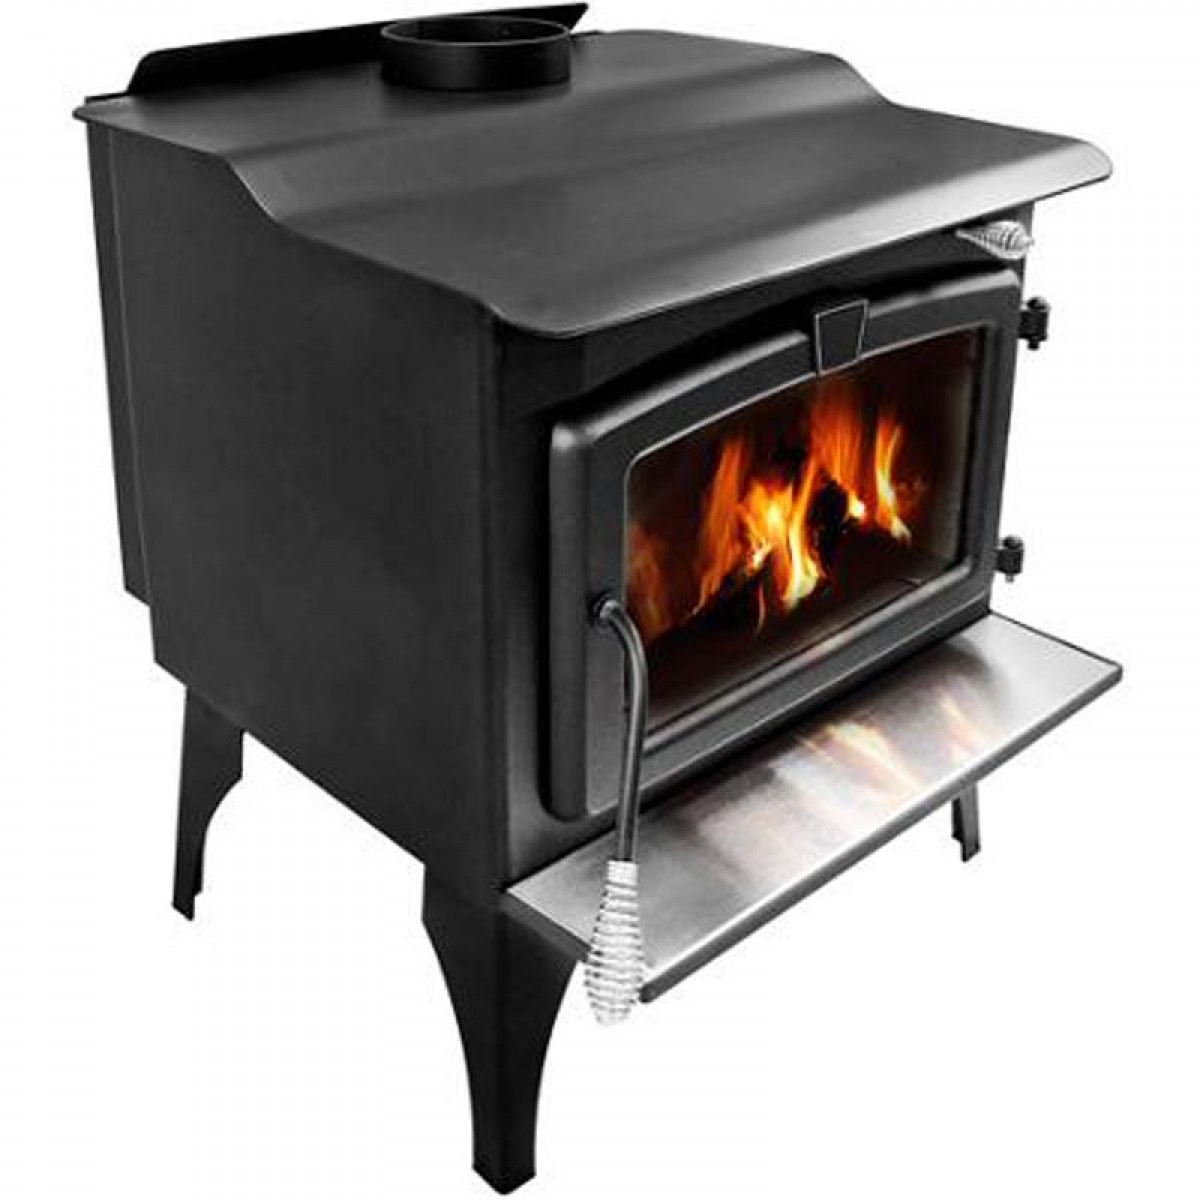 Pleasant Hearth Medium Wood Burning Stove With Legs Lws 12720